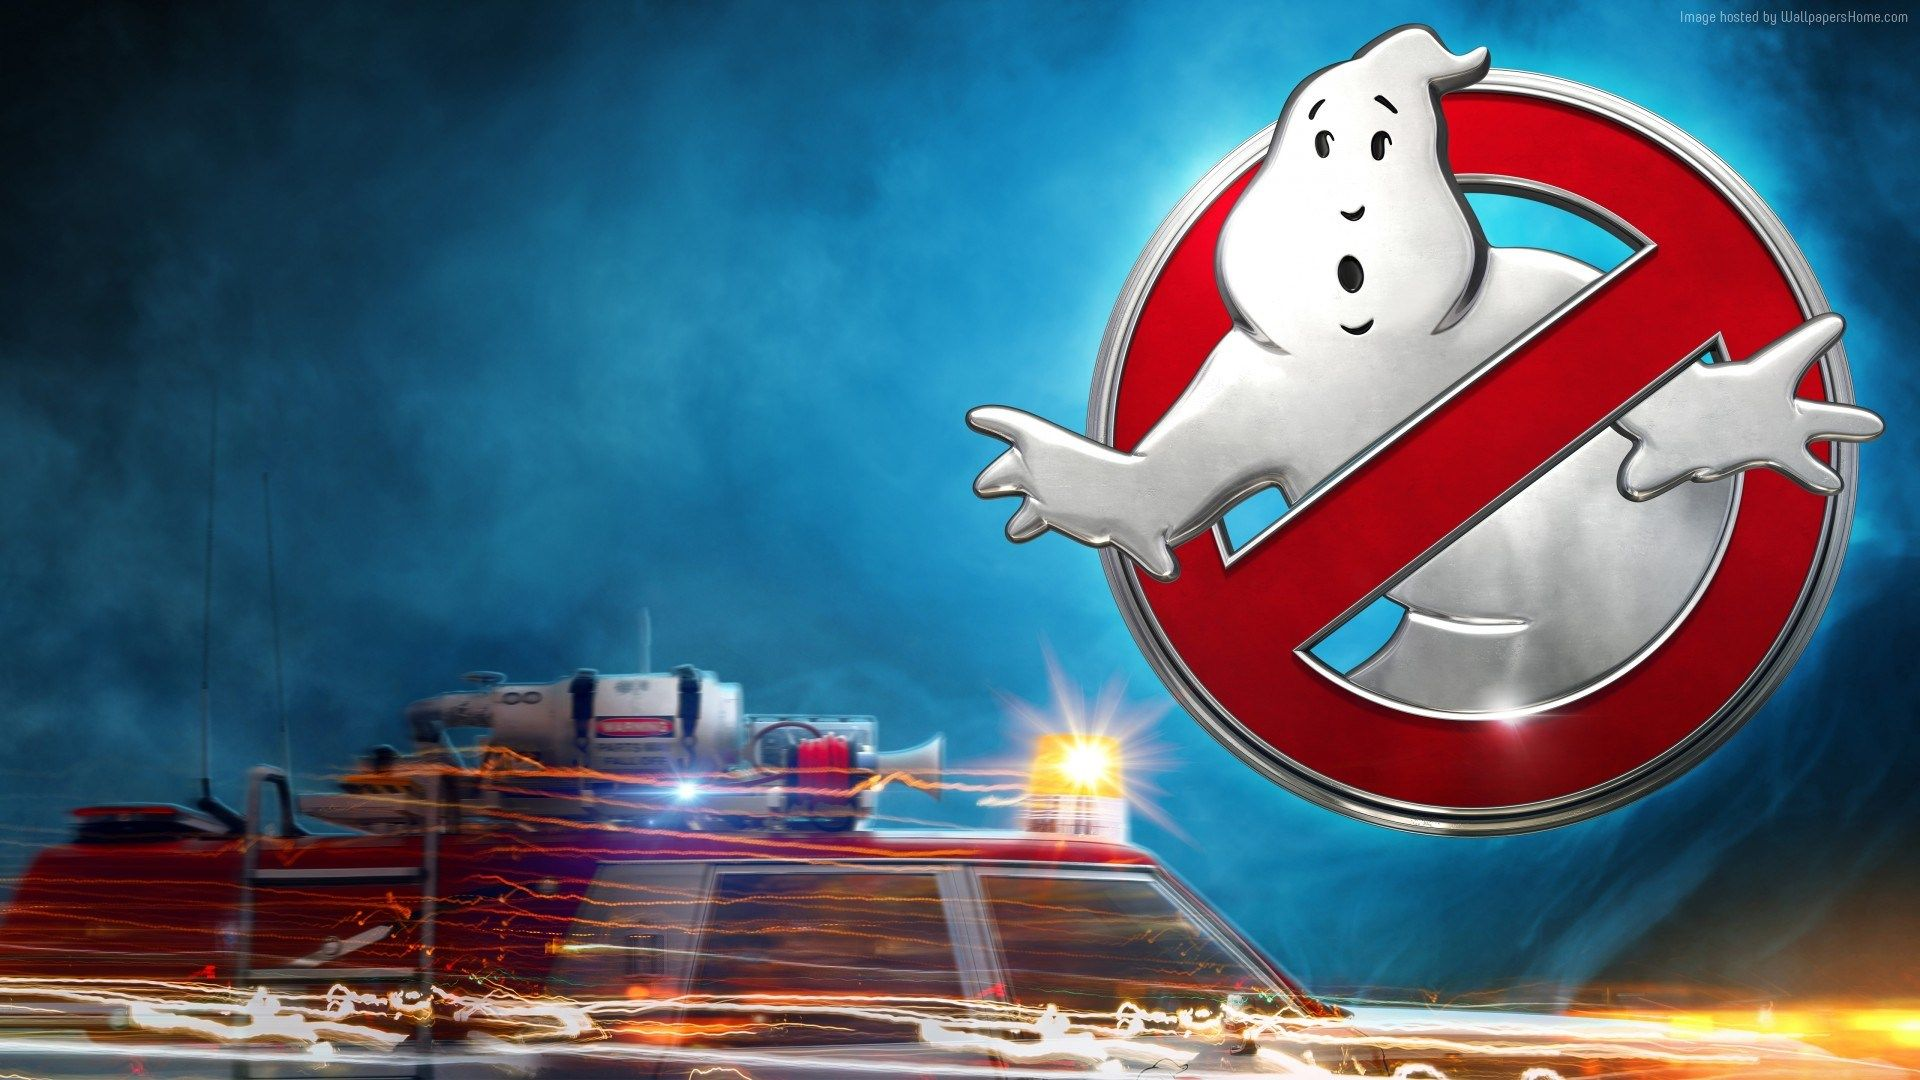 Ghostbusters Wallpaper Movies Ghostbusters Movie Wallpapers Ghostbusters 2016